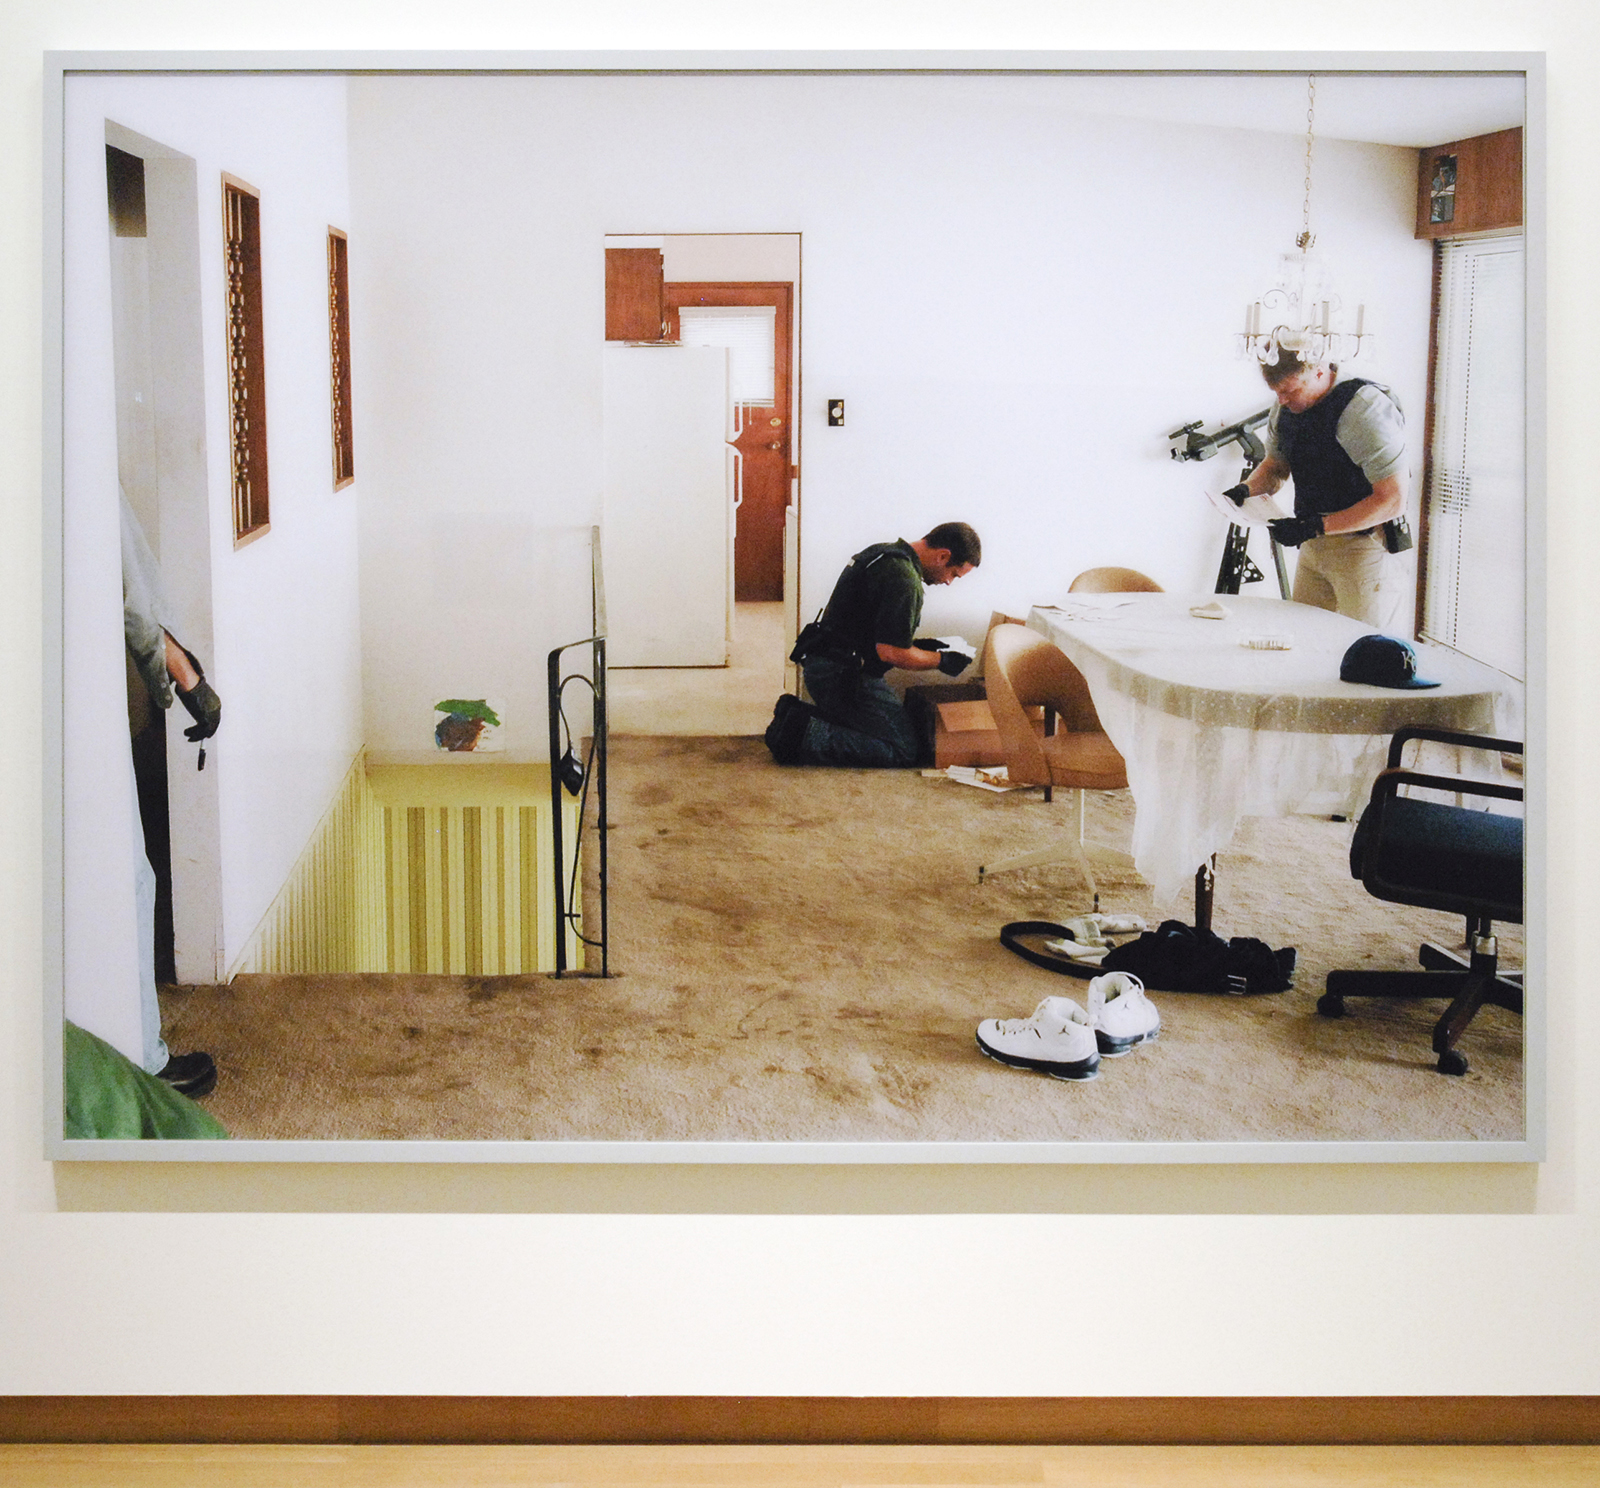 Image De Dressing Stedelijk Museum; Jeff Wall – Tableaux, Pictures